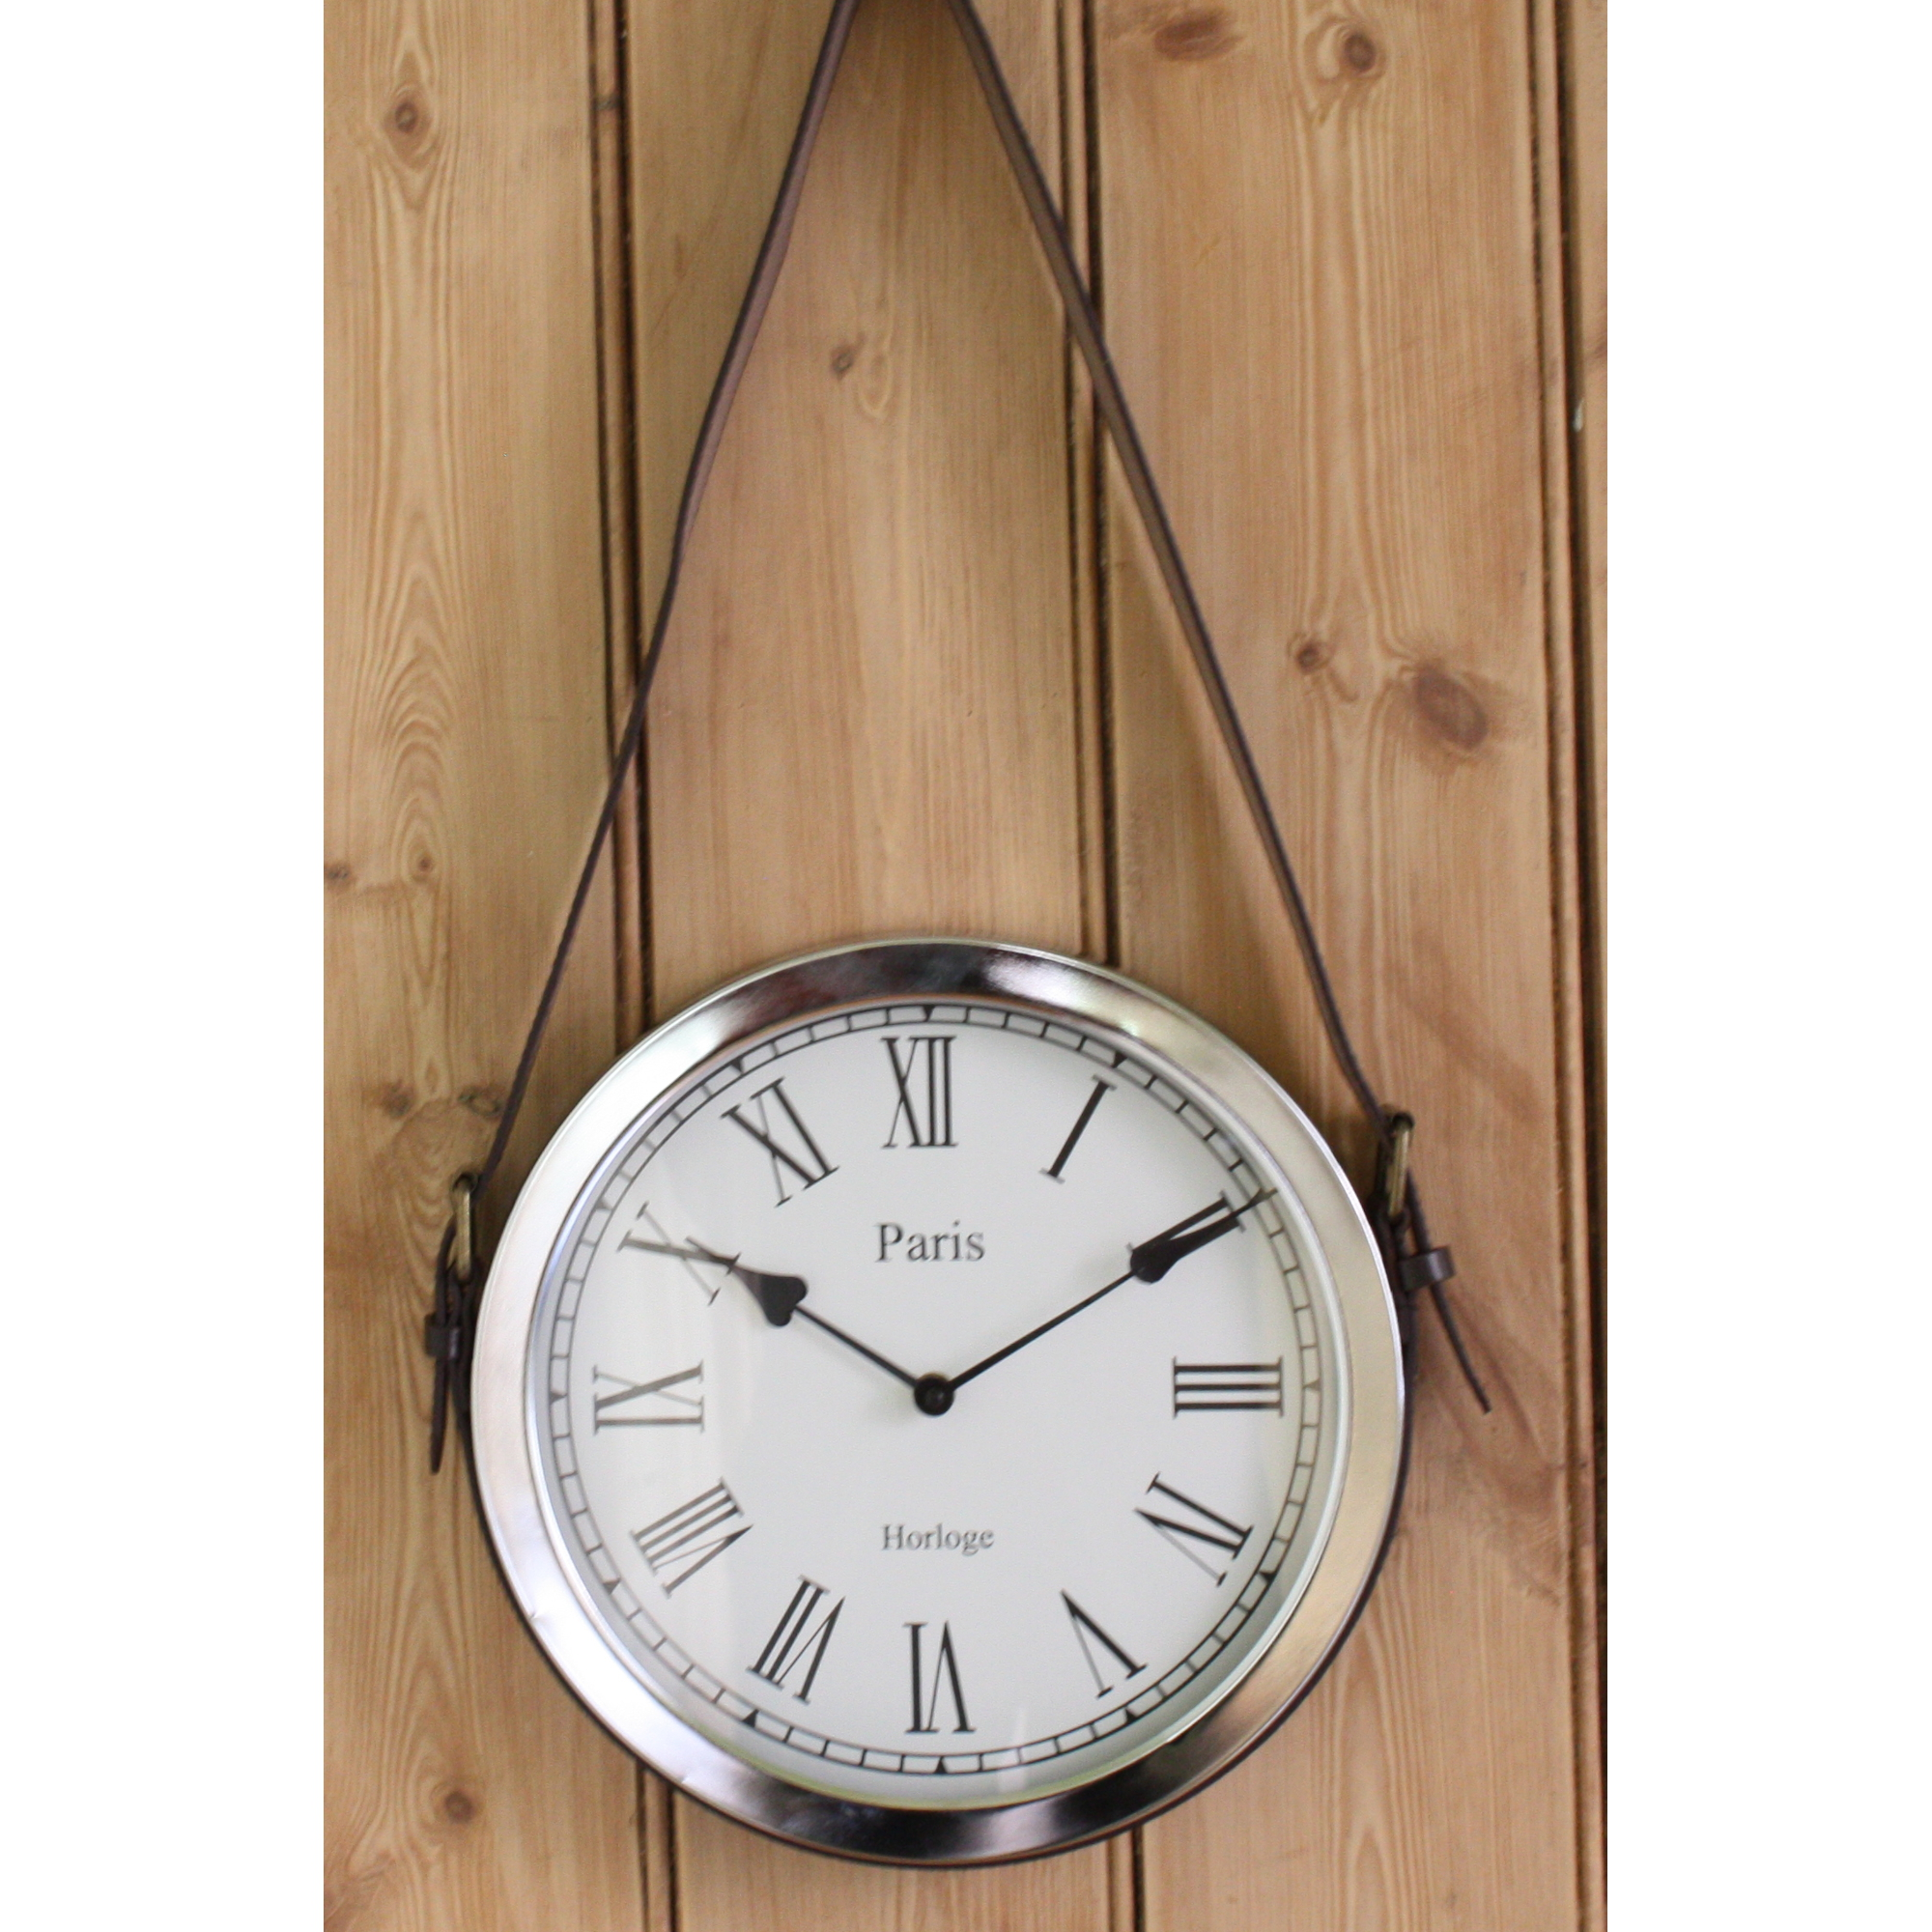 Hanging a wall clock gallery home wall decoration ideas leather wall clock 12000 wall clocks metal chrome hanging leather belt wall clock amipublicfo gallery amipublicfo Gallery